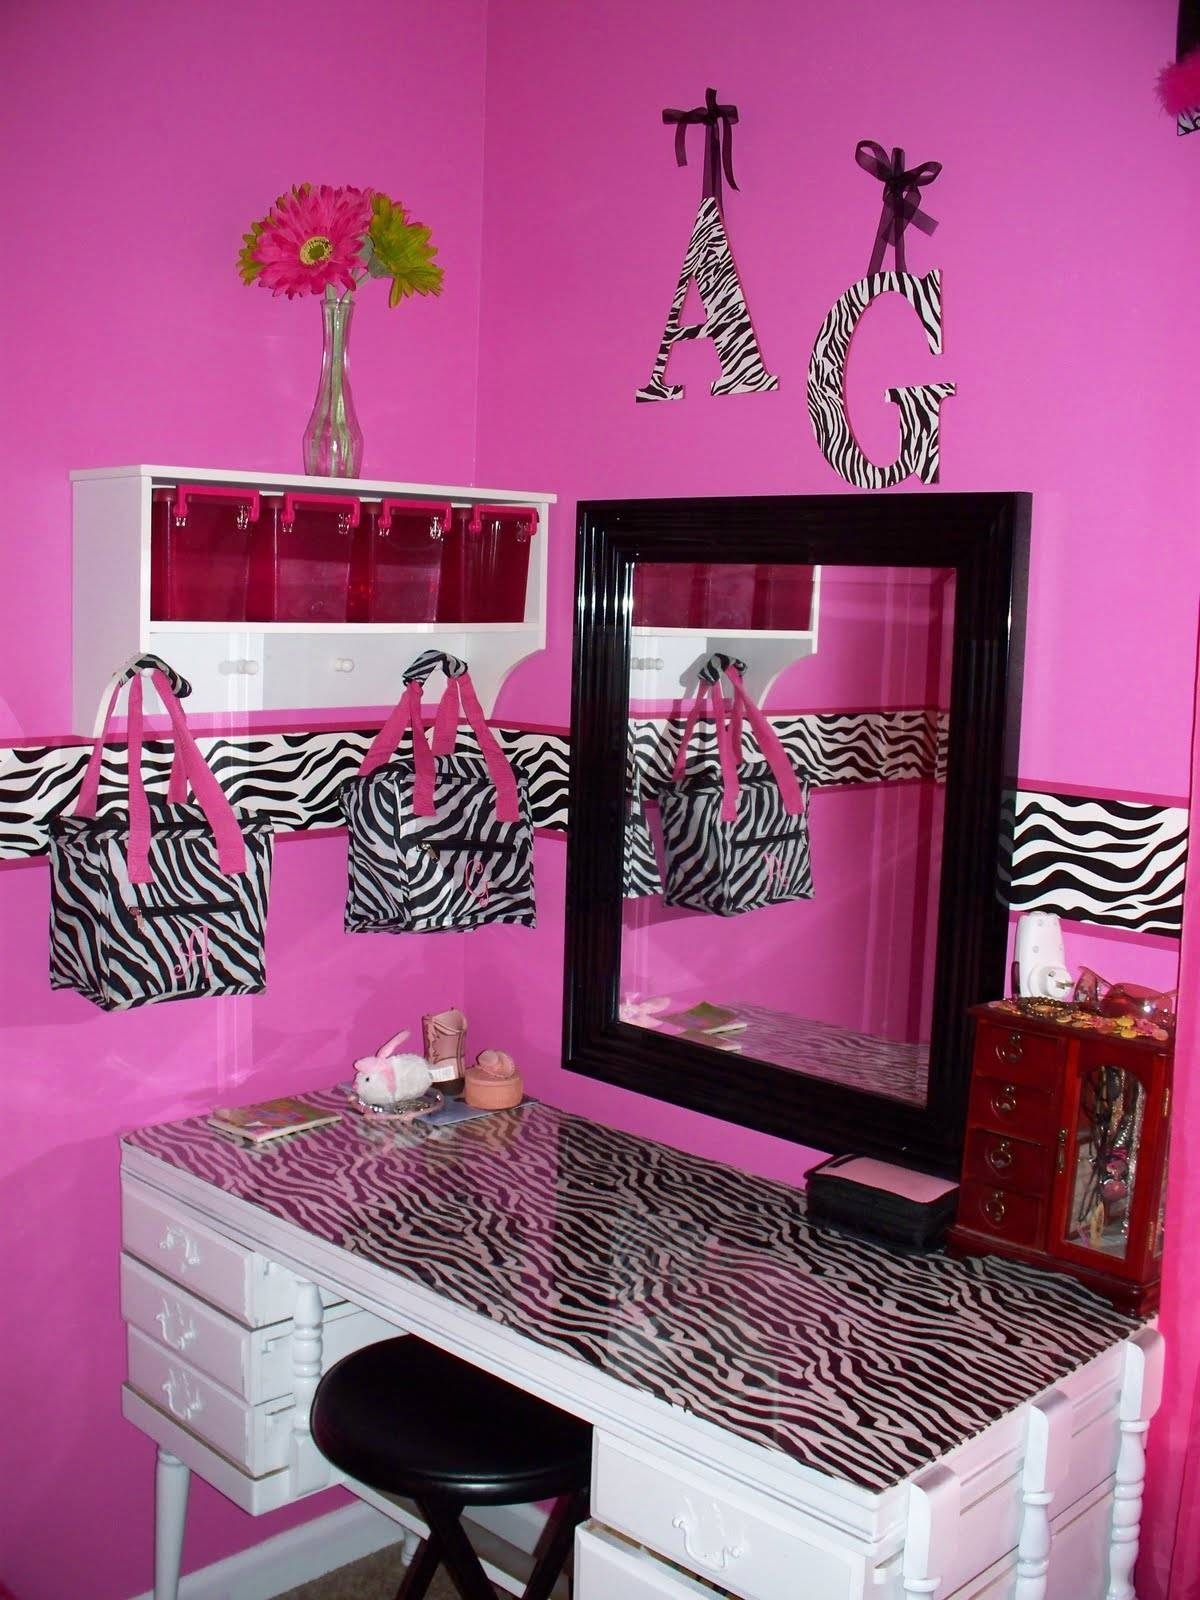 Bedroom : Awesome Bedroom Coolest Room Ideas For Teenage Girls with Kids Sofa Chair And Ottoman Set Zebra (Image 3 of 30)